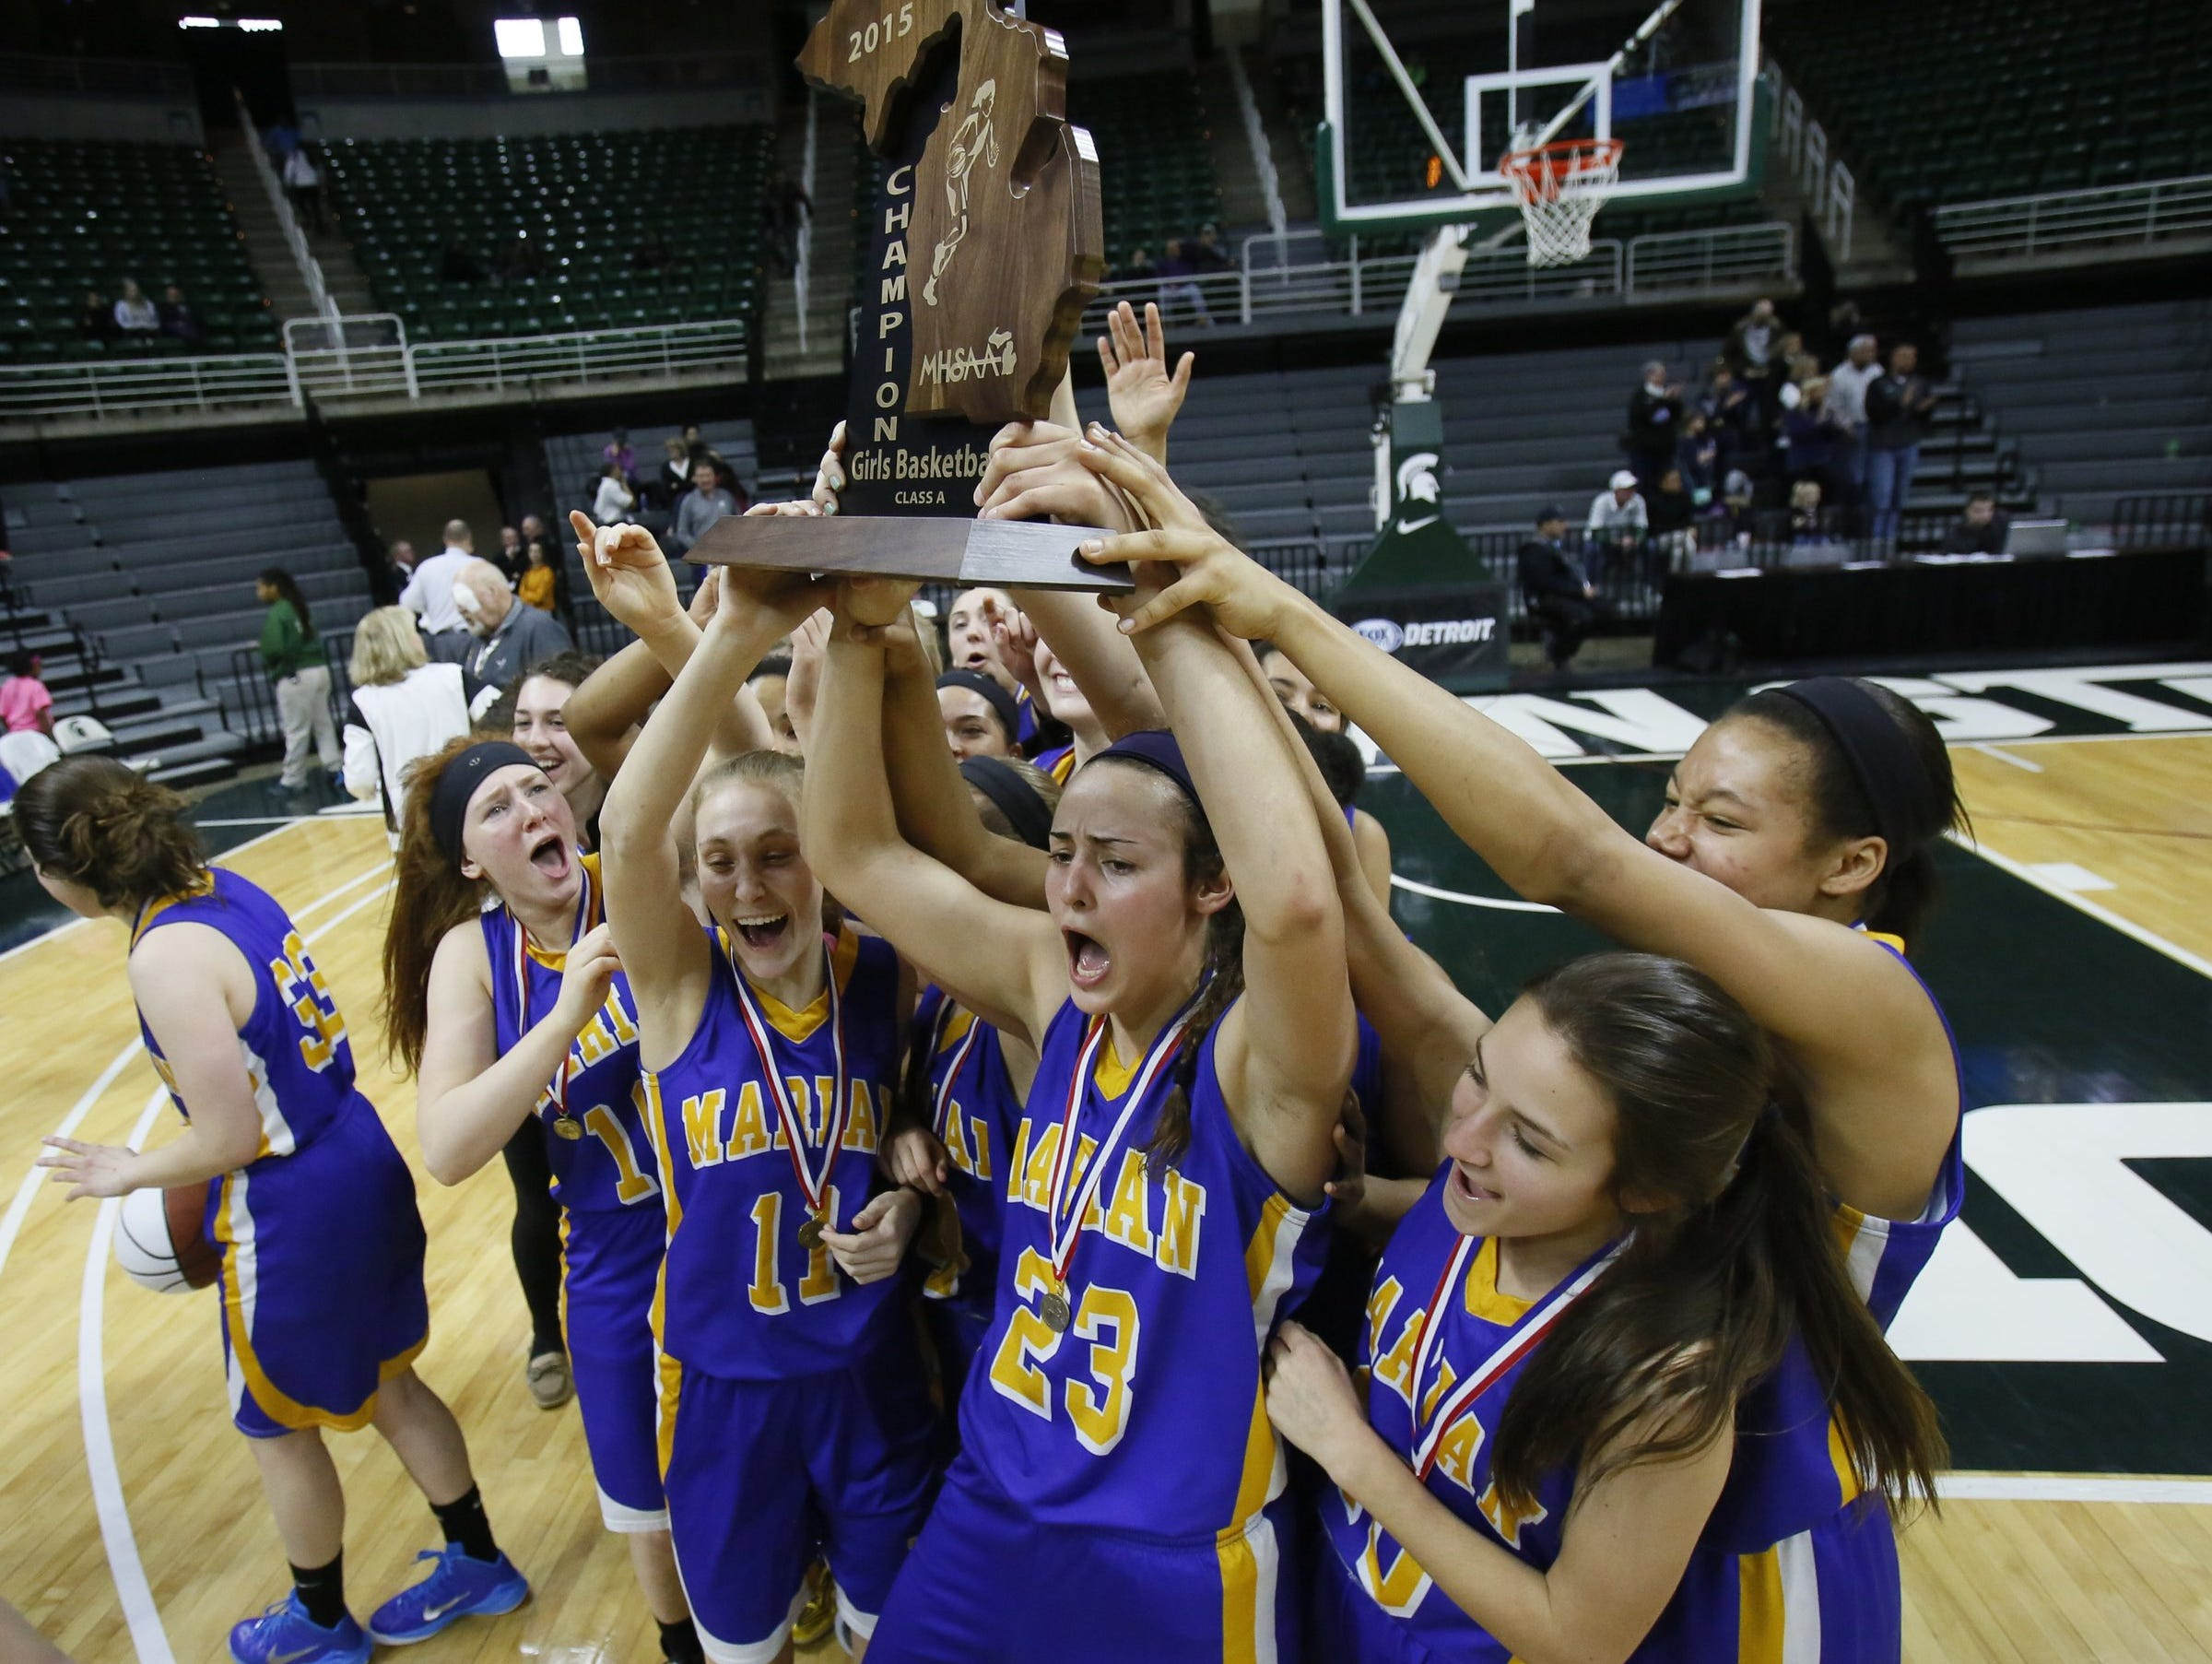 Bloomfield Hills Marian players celebrate for the TV camera's with the championship trophy after their 51-37 win over Dewitt in Class A girls basketball final on March 21, 2015, in East Lansing.